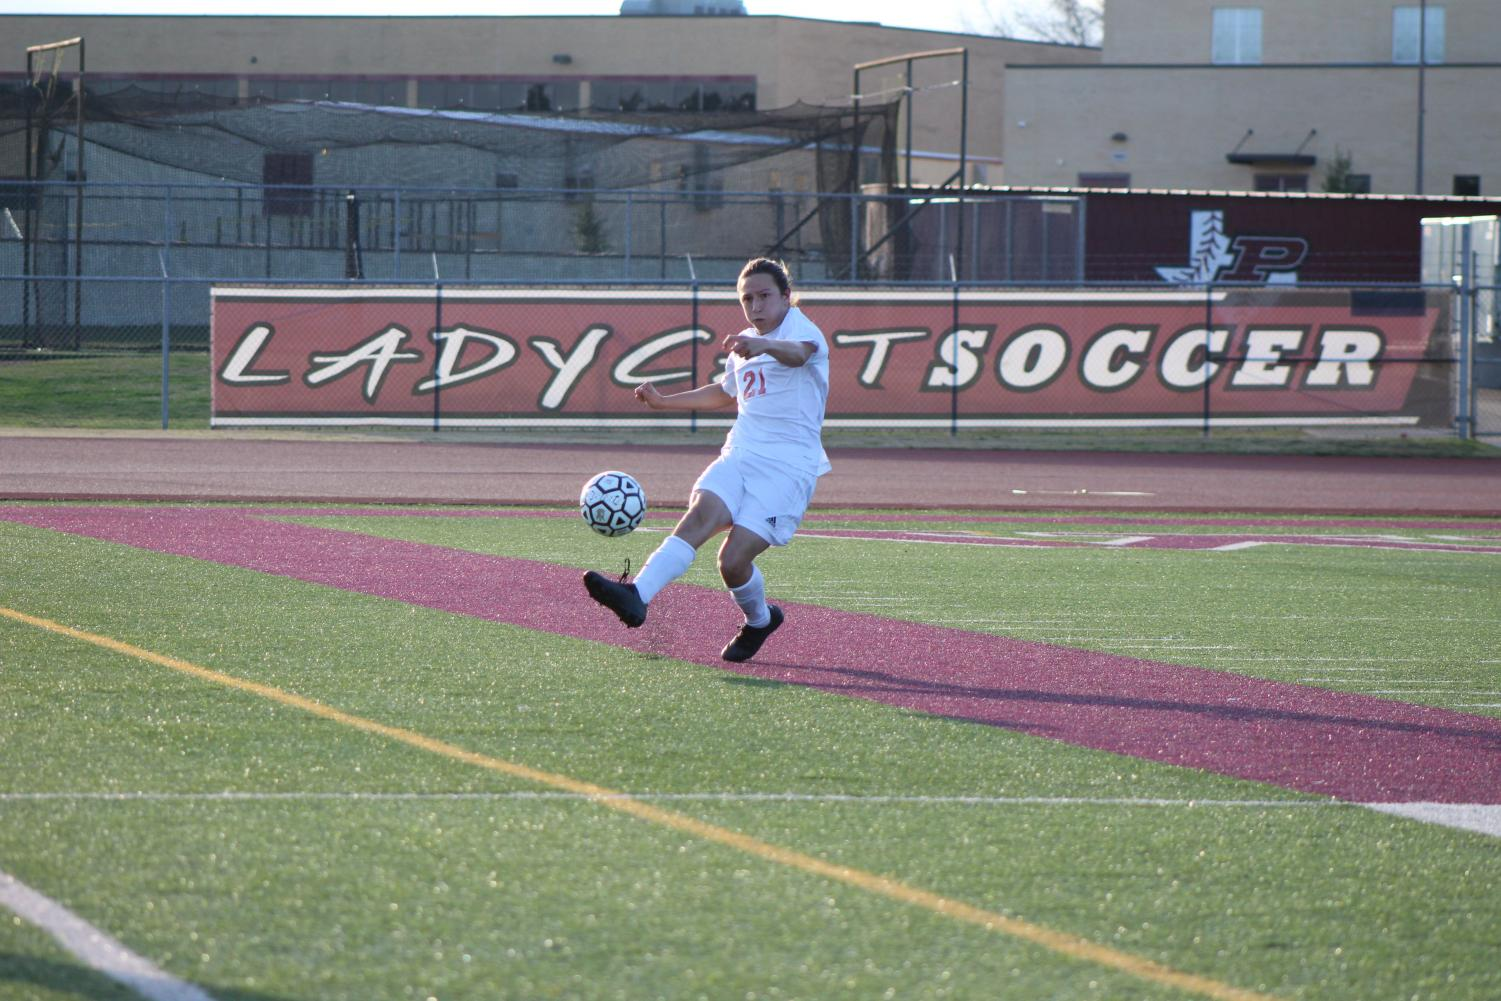 Senior Daniel Sifford kicks the ball off the field.